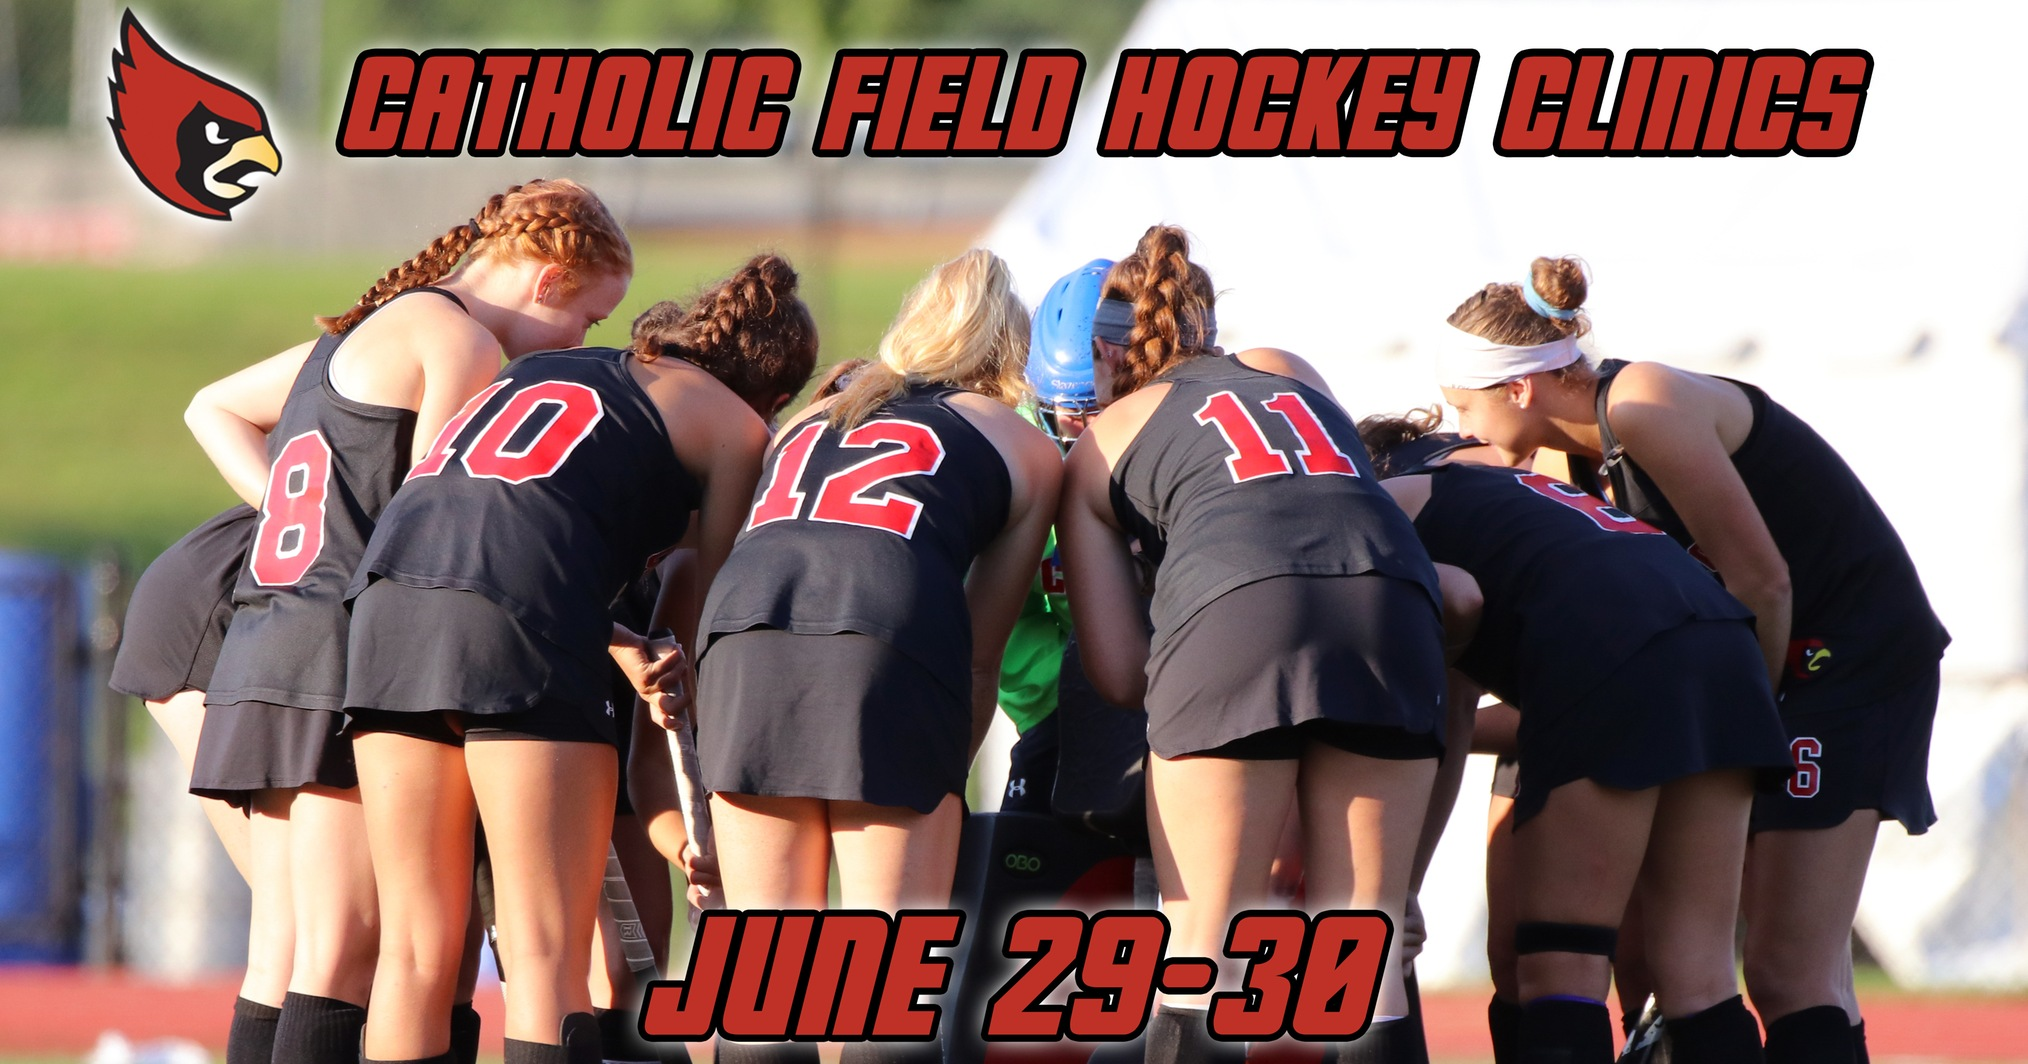 Cardinals to Host Two Clinics on June 29 and June 30